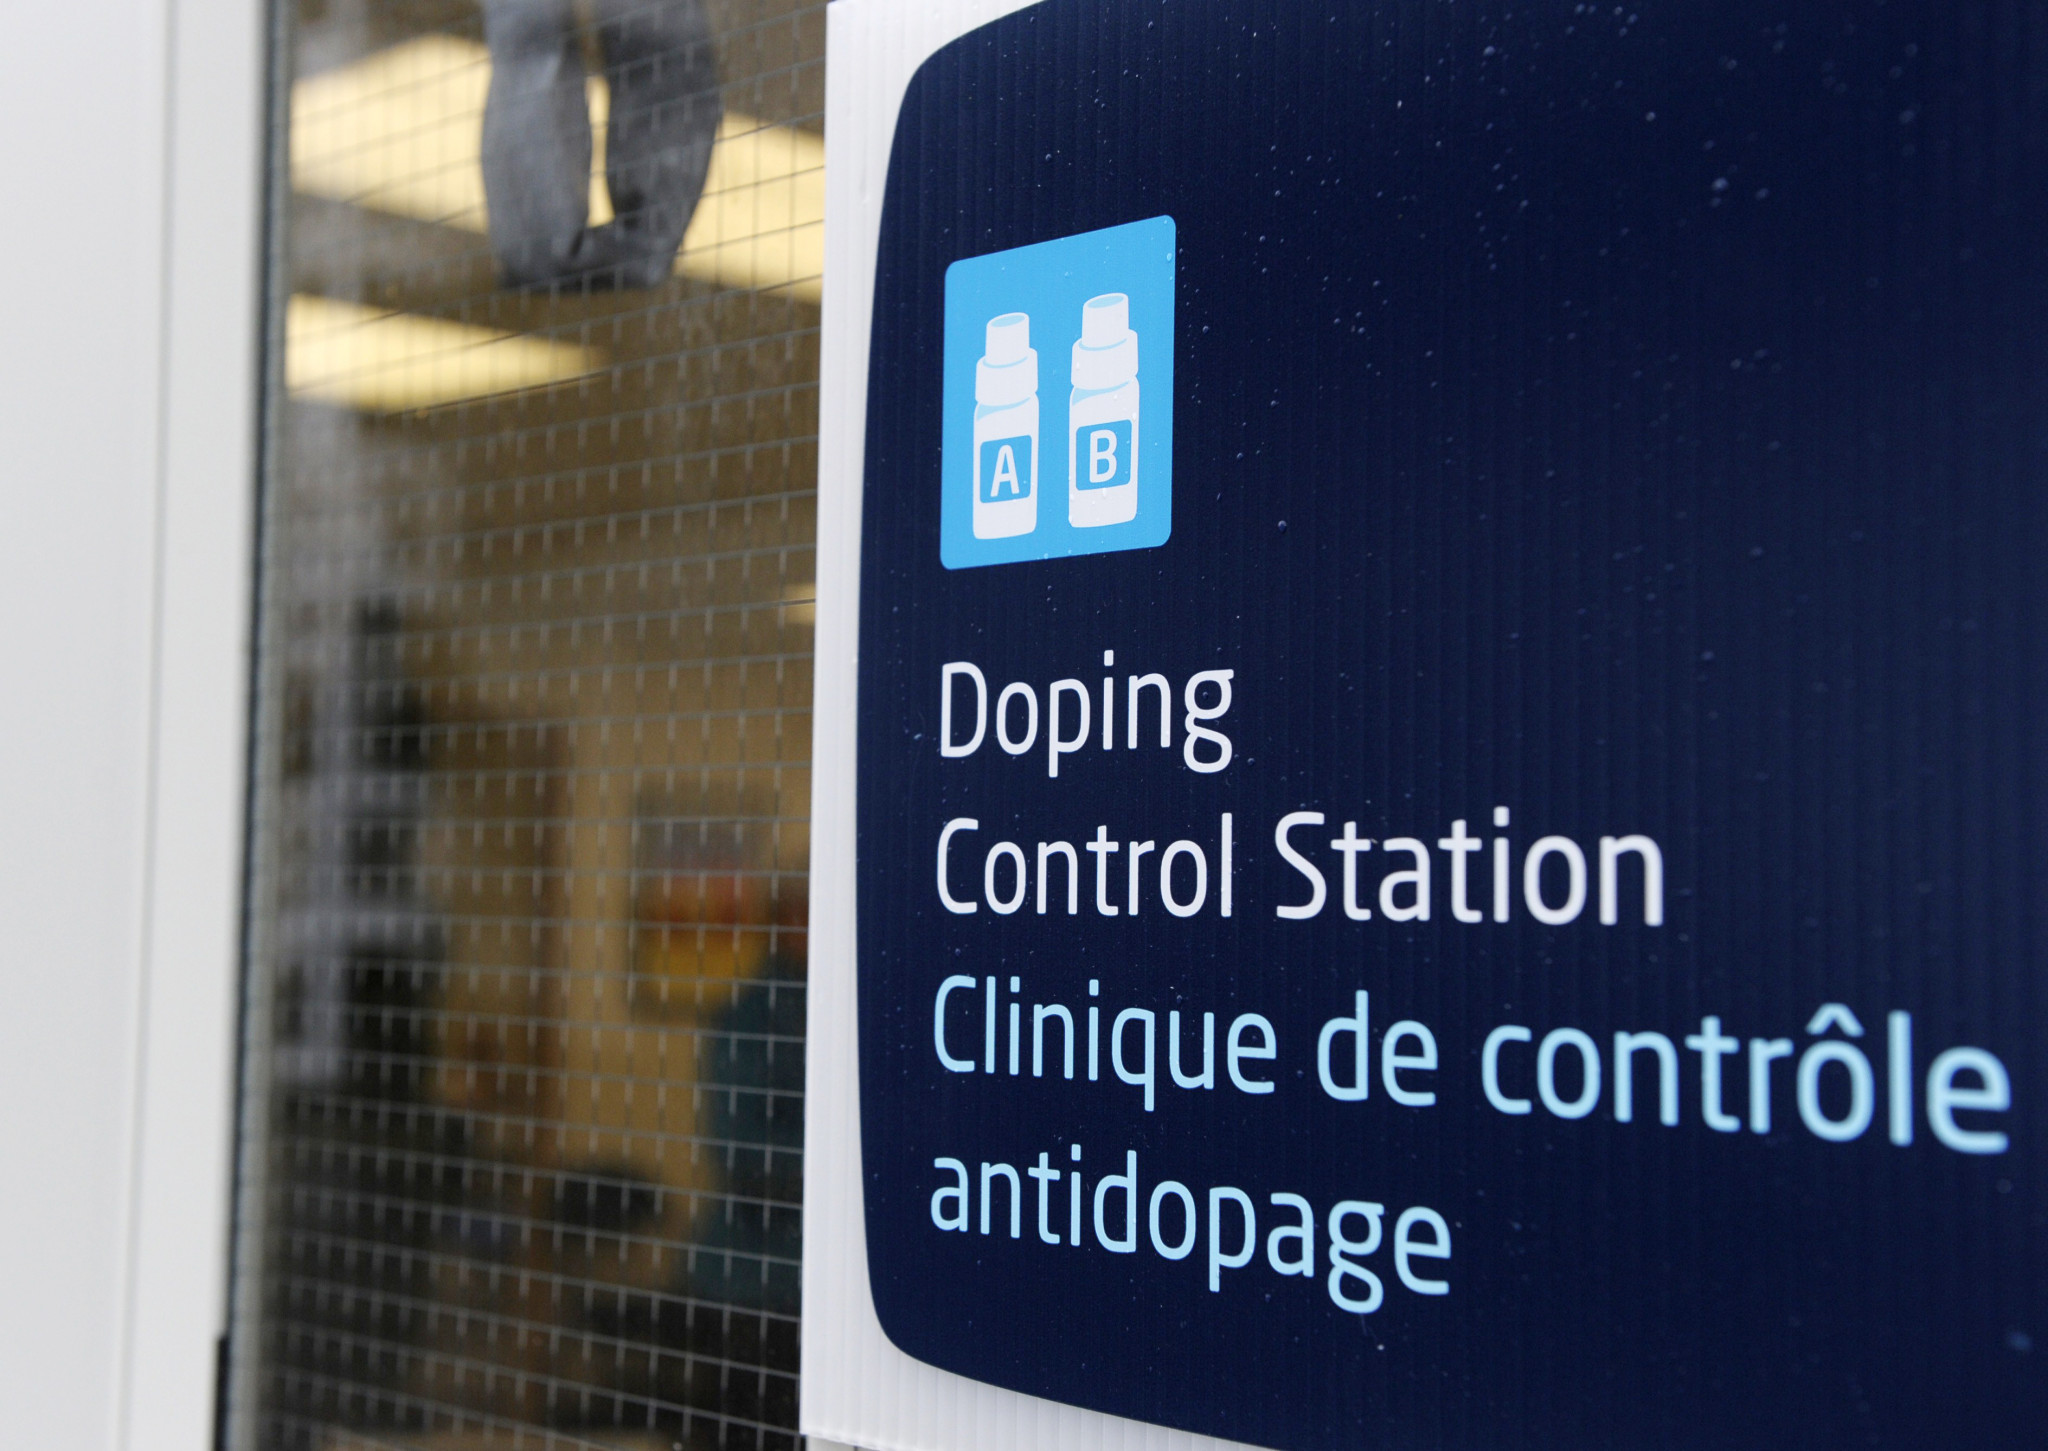 Canada to resume anti-doping tests with supplemental safety measures in place